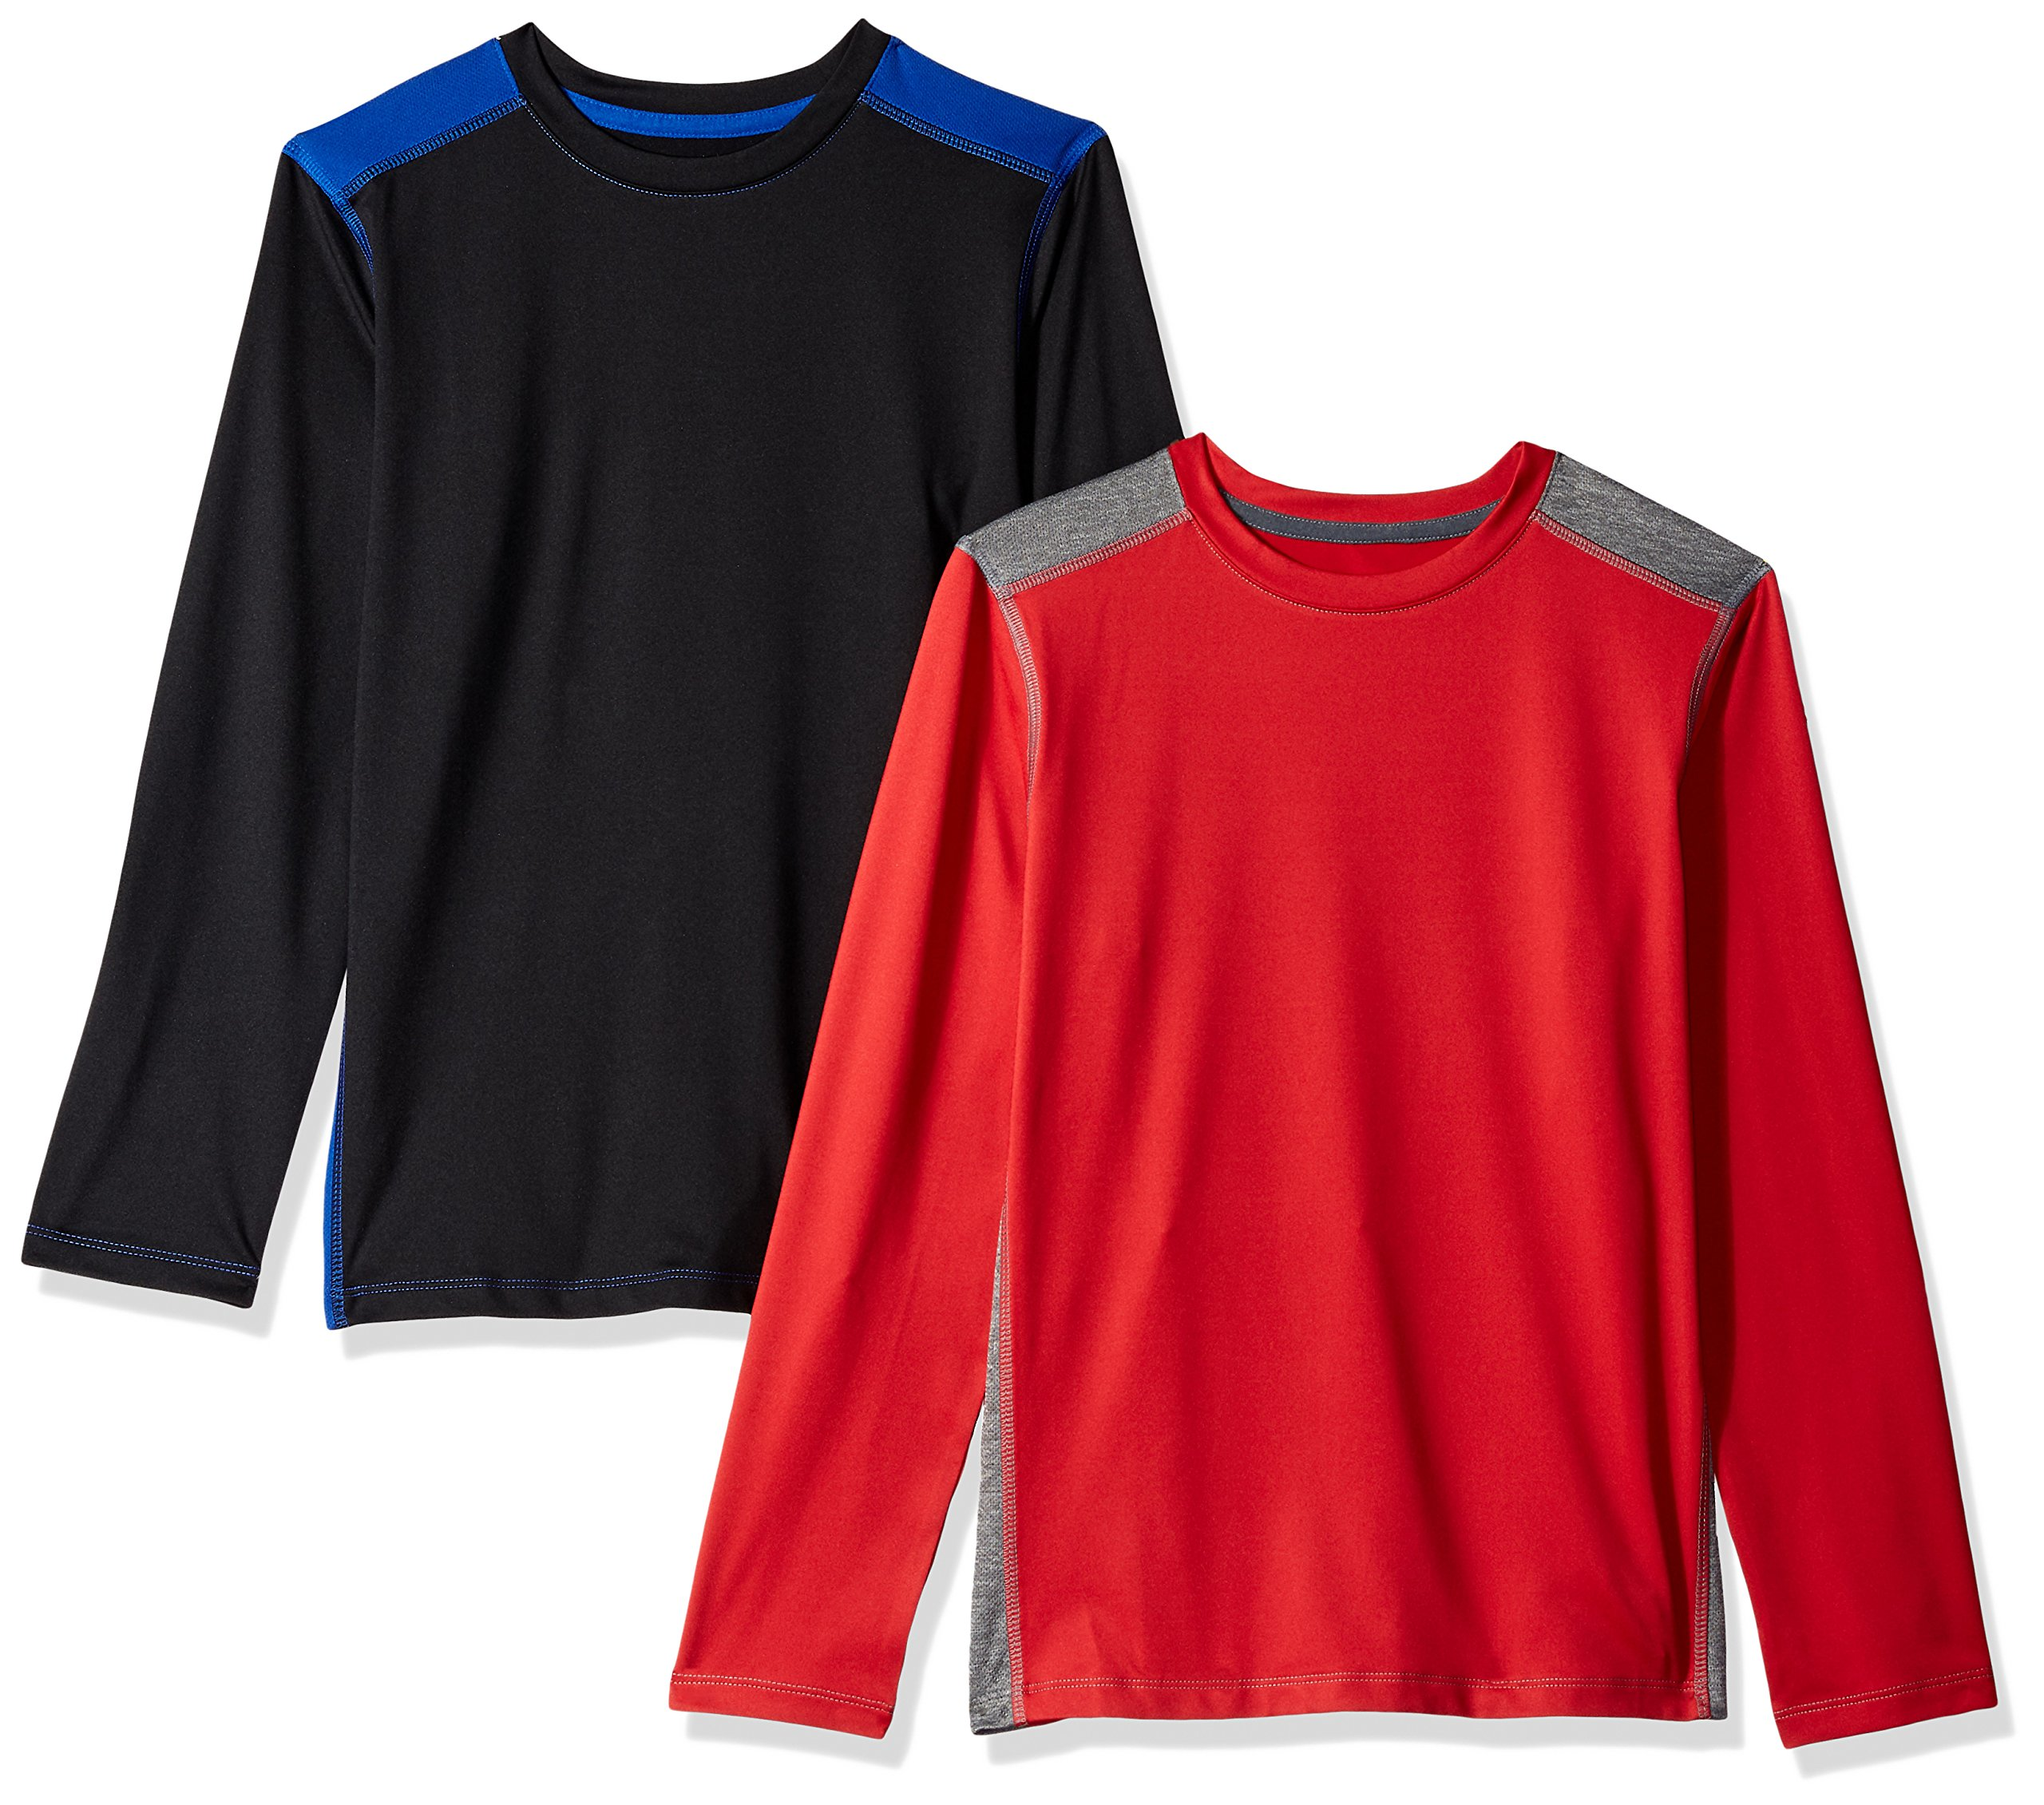 Amazon Essentials Boys' 2-Pack Long-Sleeve Pieced Active Tee, Black/Royal Blue/Red/Grey, Small